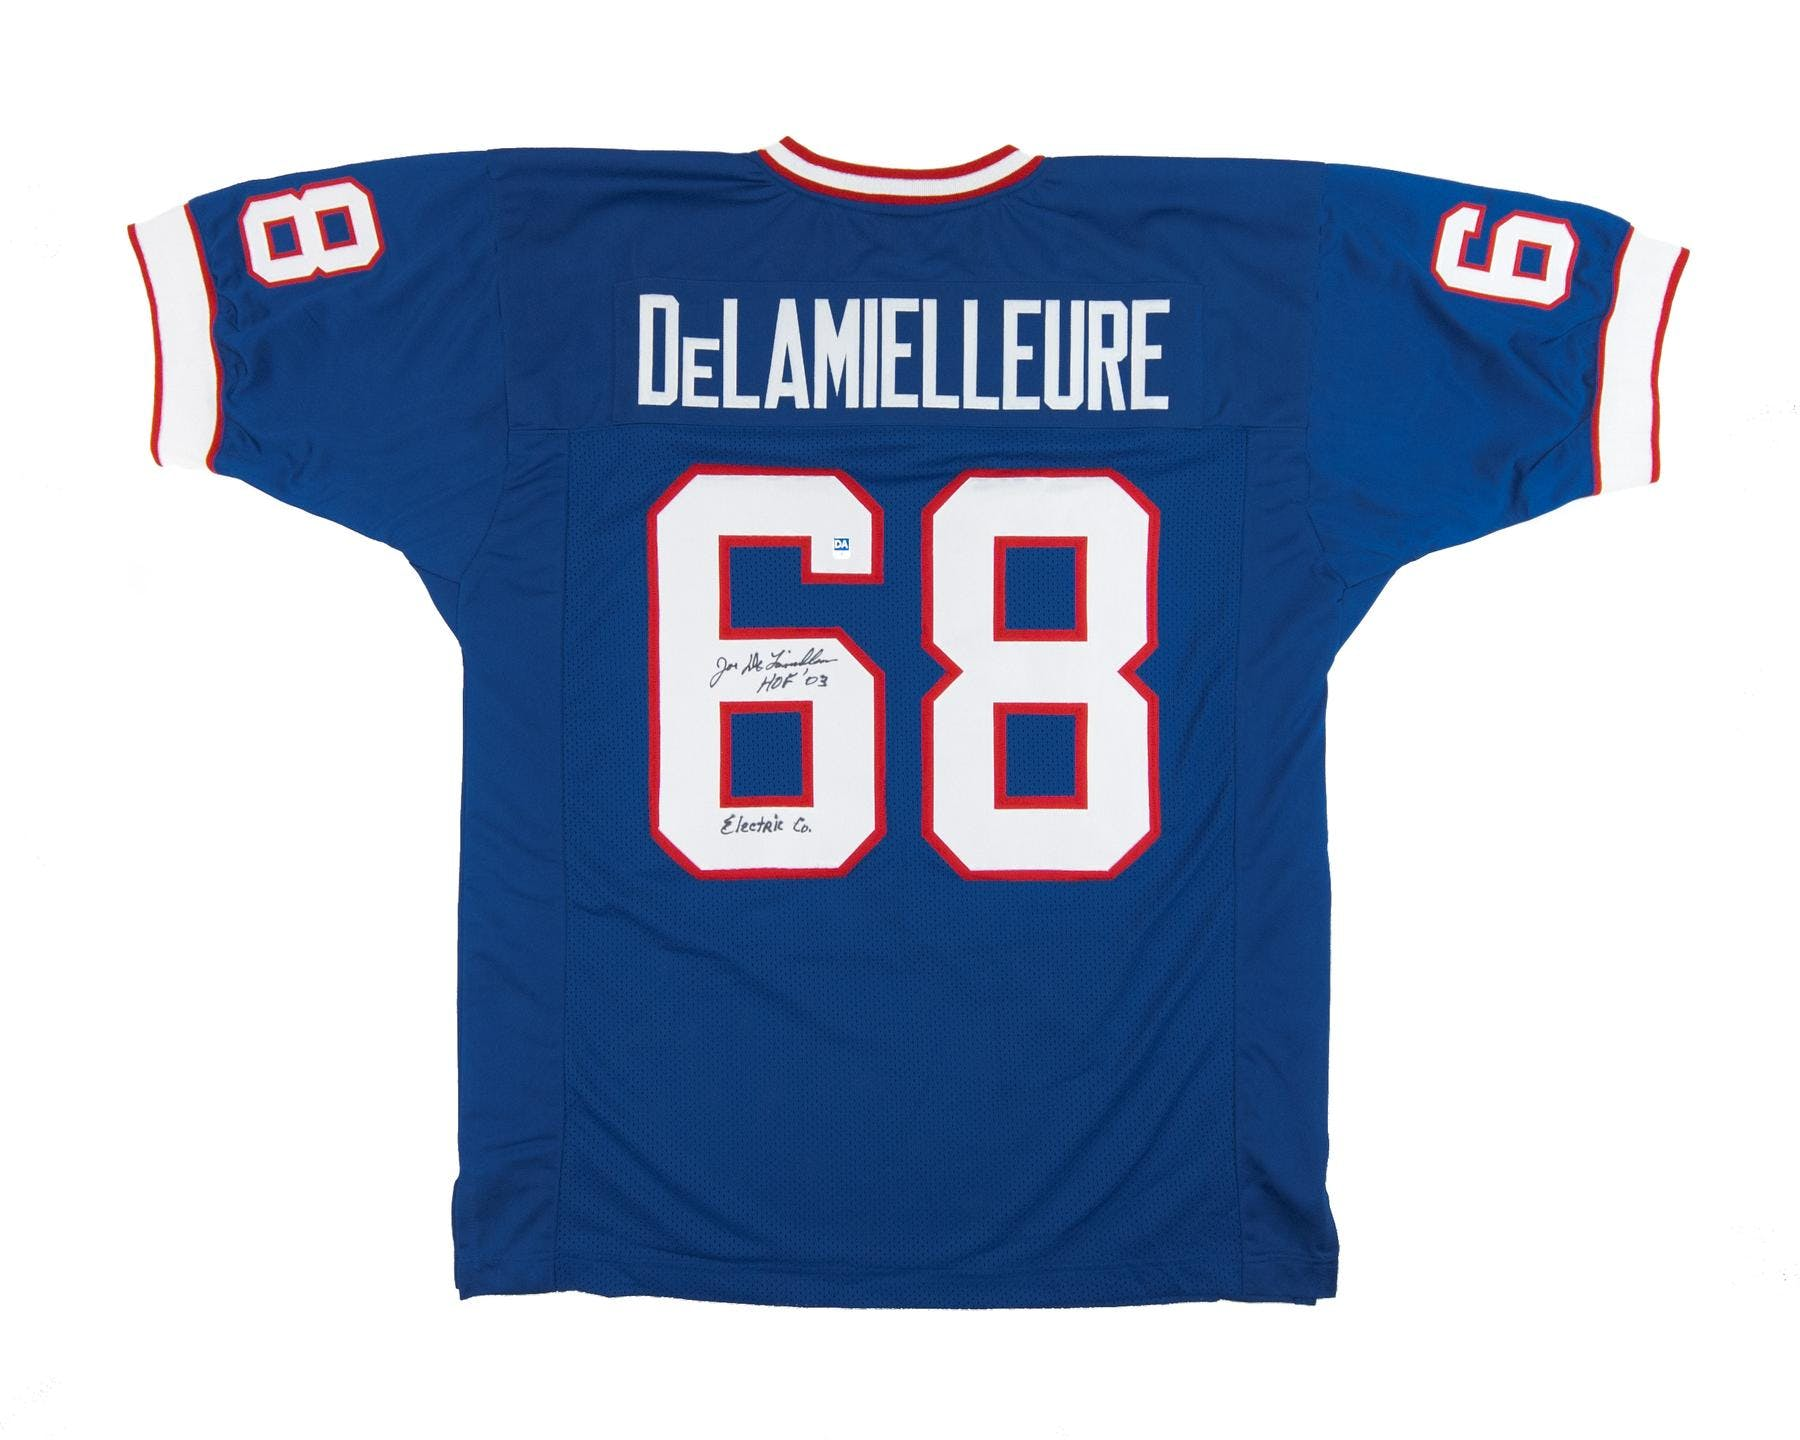 half off 4cb9e 879d9 Joe DeLamielleure Autographed Buffalo Bills Blue Football Jersey Electric  Company